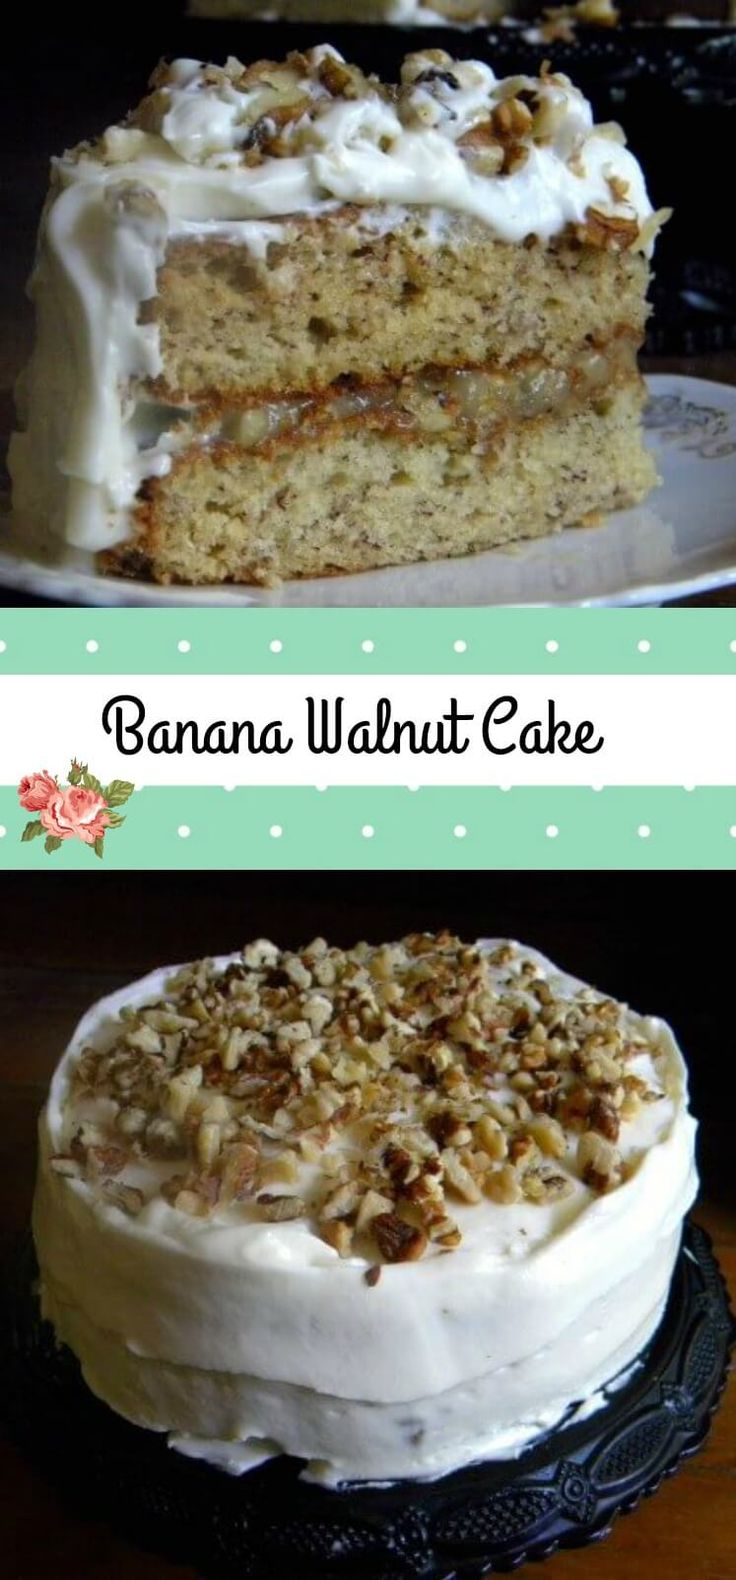 Banana walnut cake with cream cheese frosting is an old fashioned layer cake that stays moist for days - Gooey walnut caramel filling